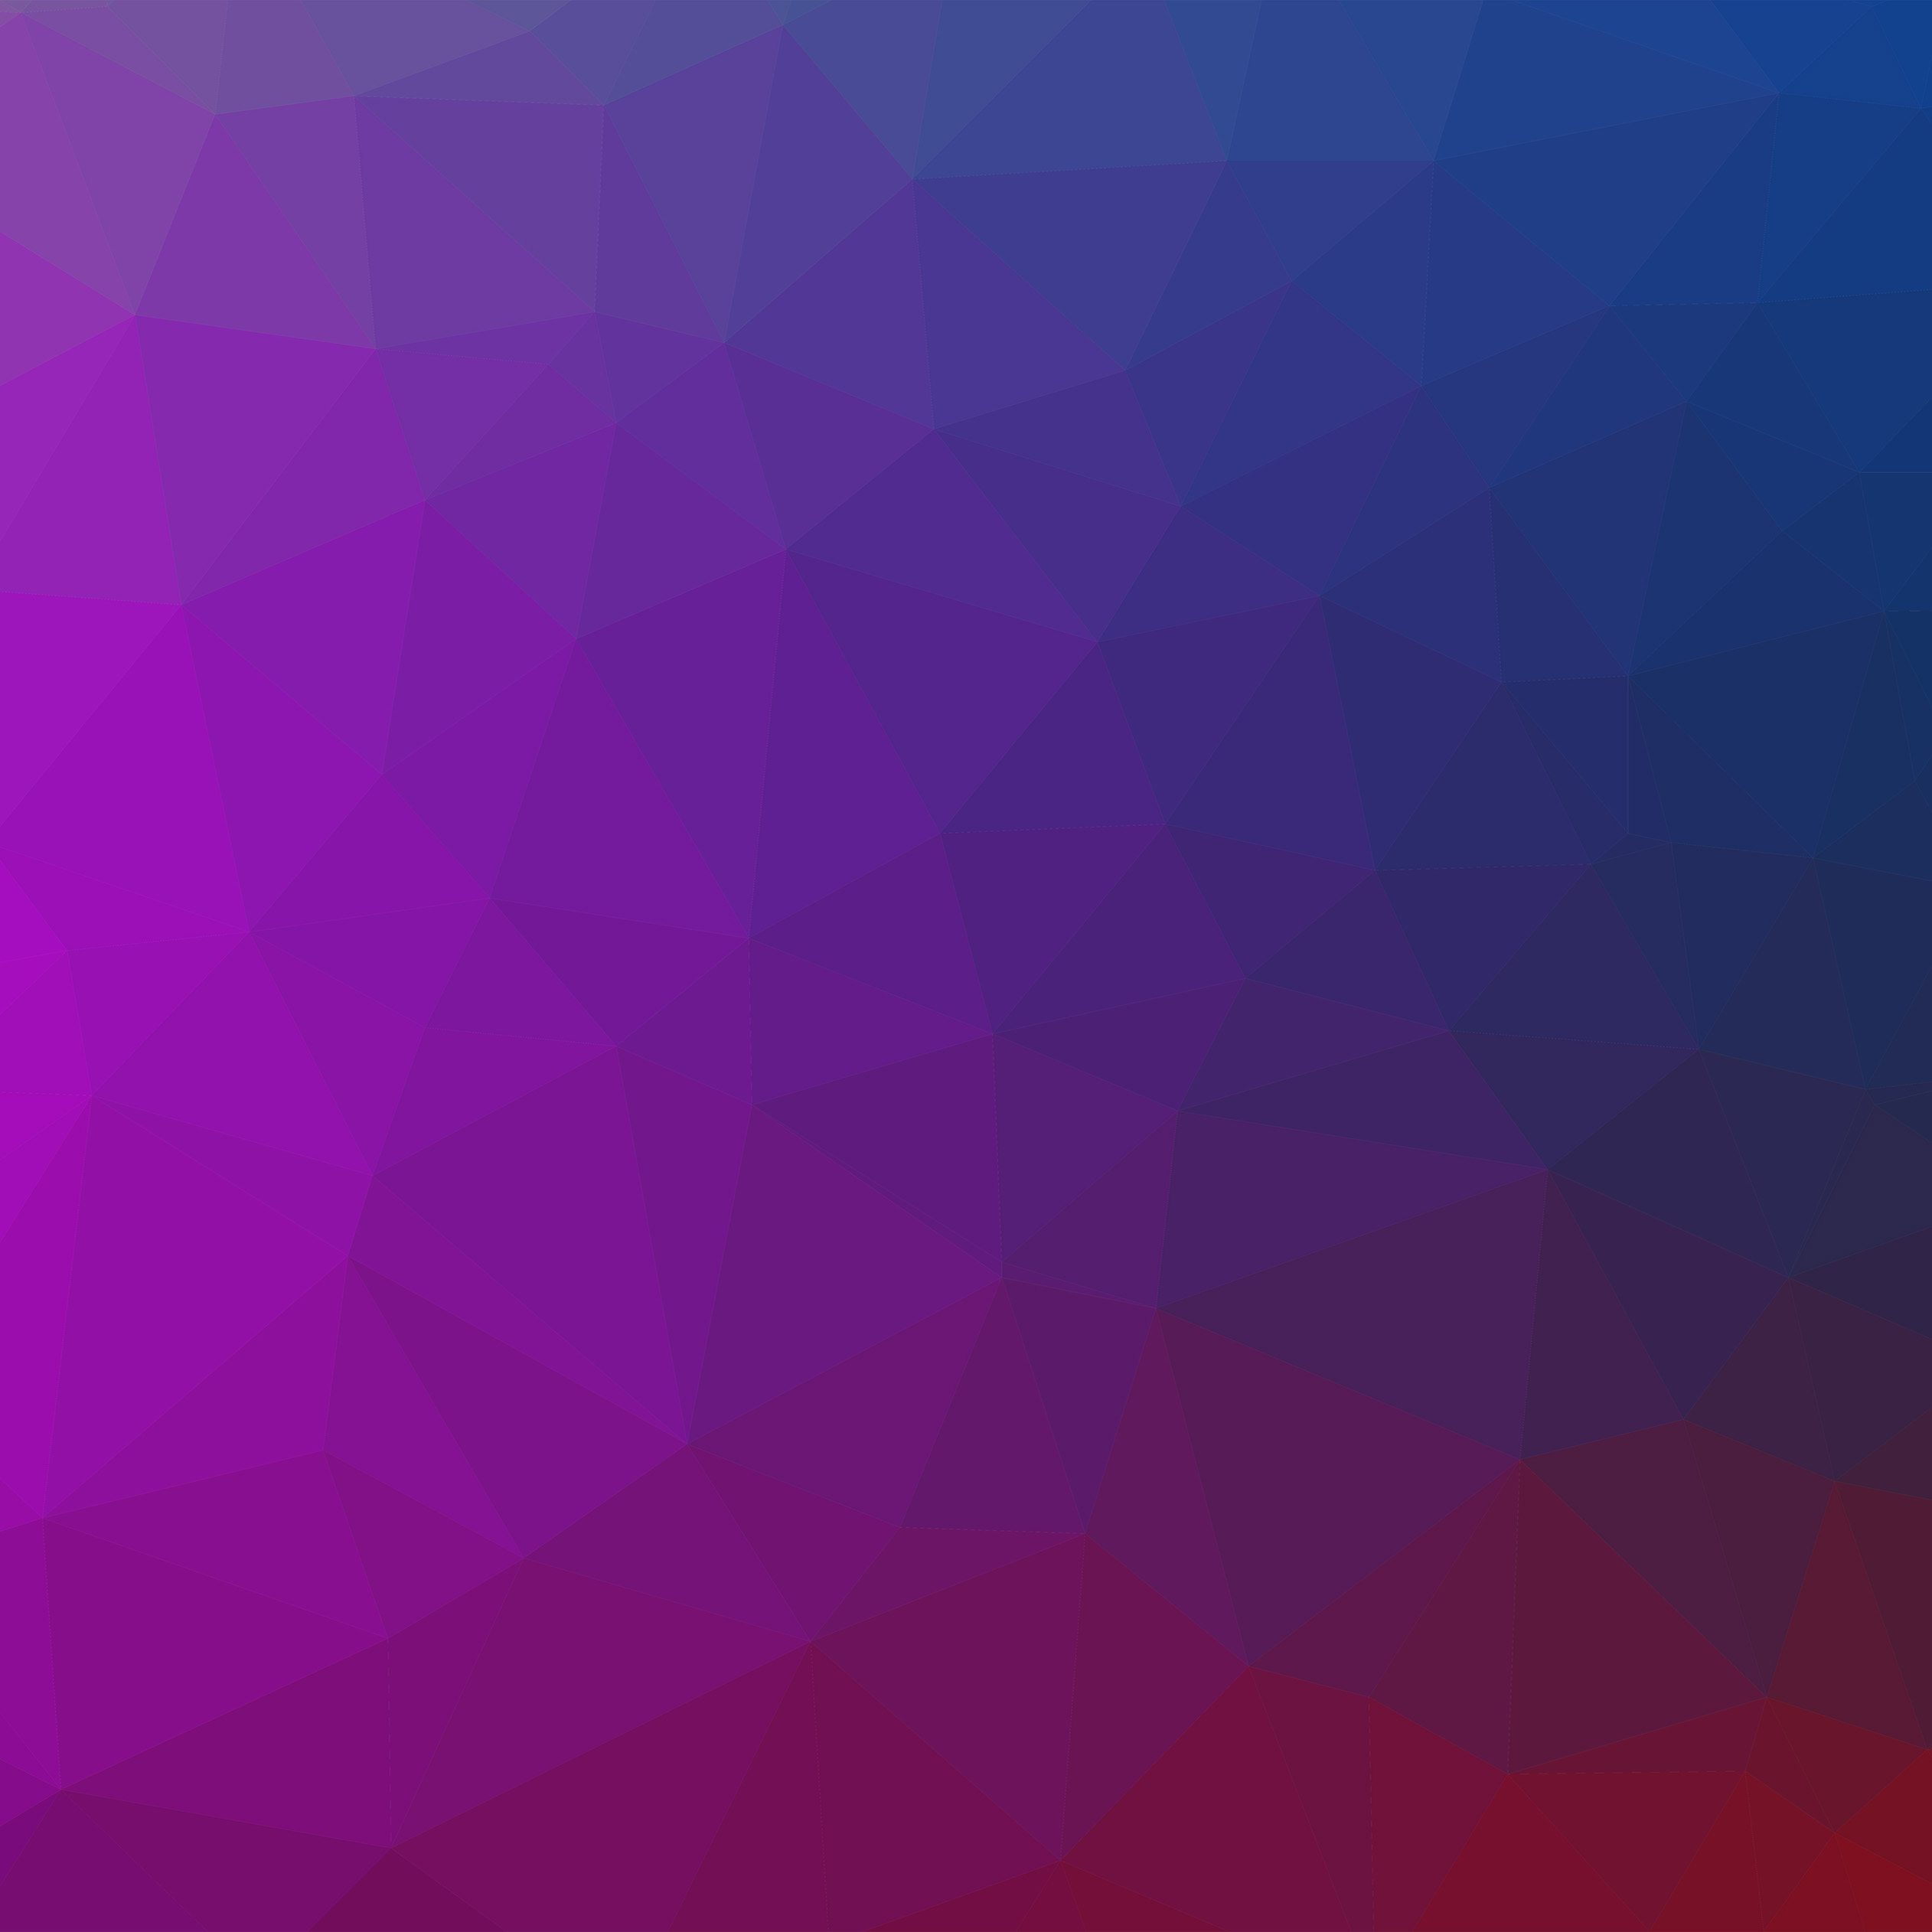 samsung-galaxy-polyart-blue-purple-pattern-9-wallpaper